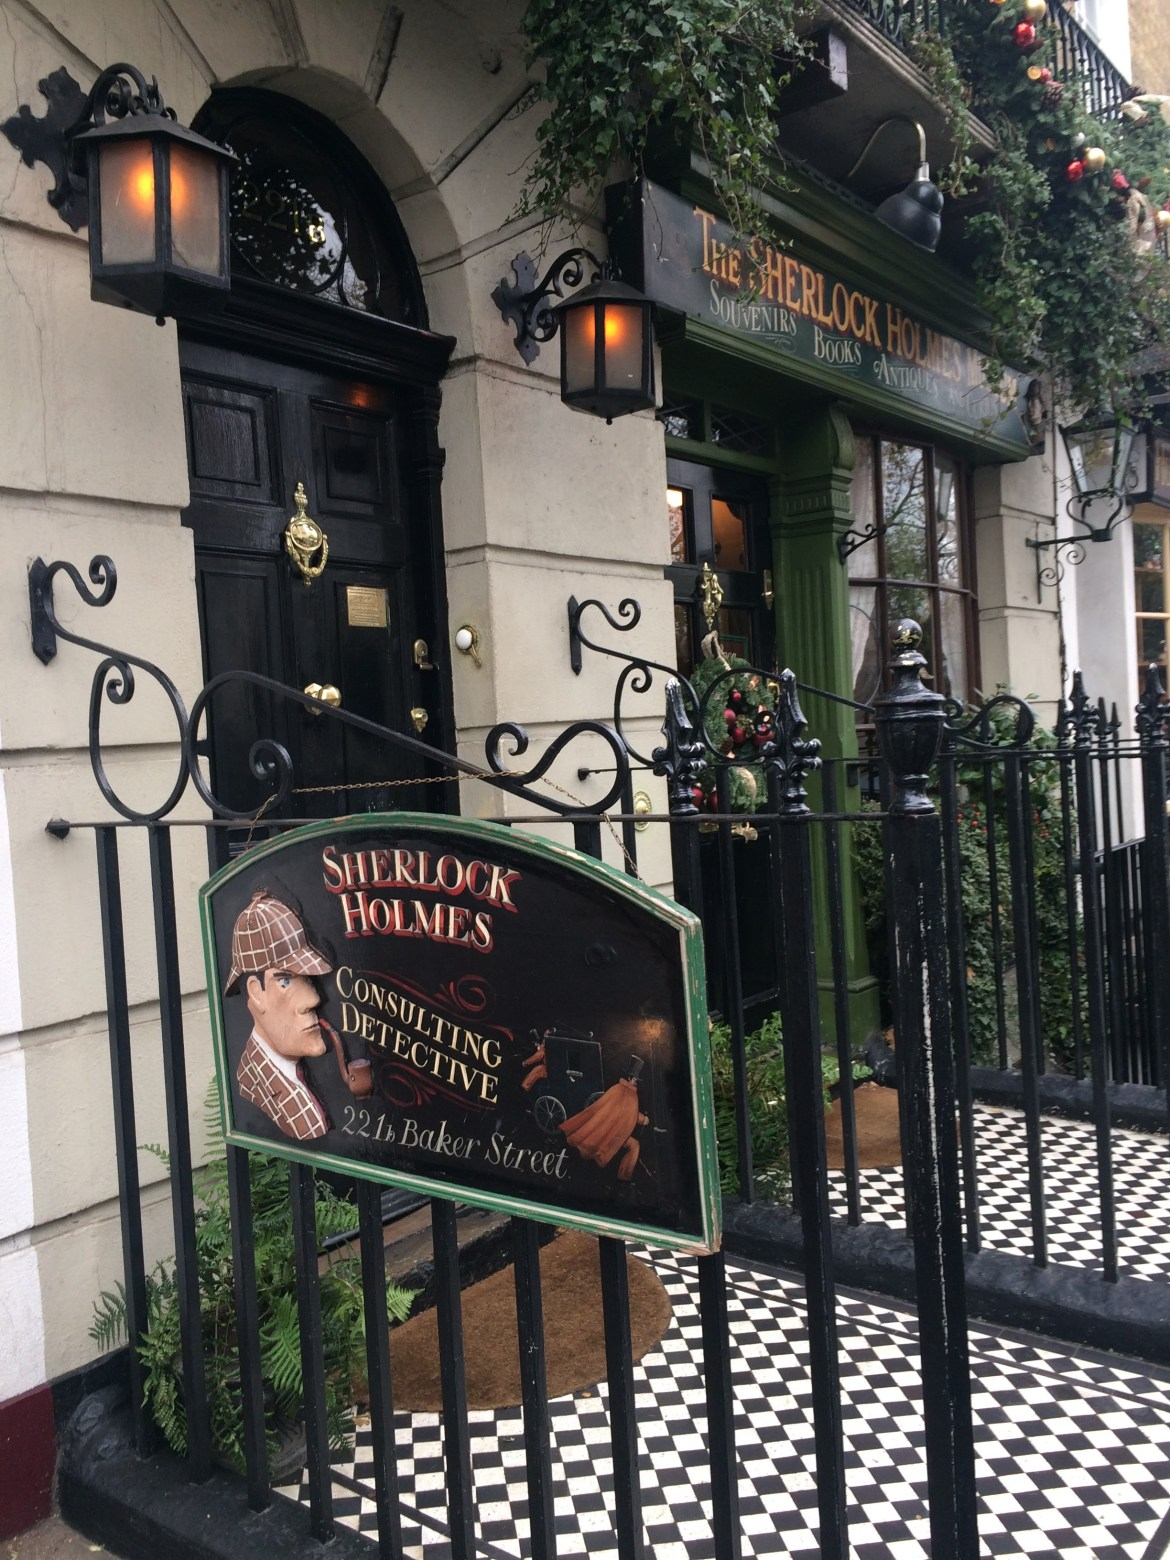 221b baker street in london with sherlock holmes lived